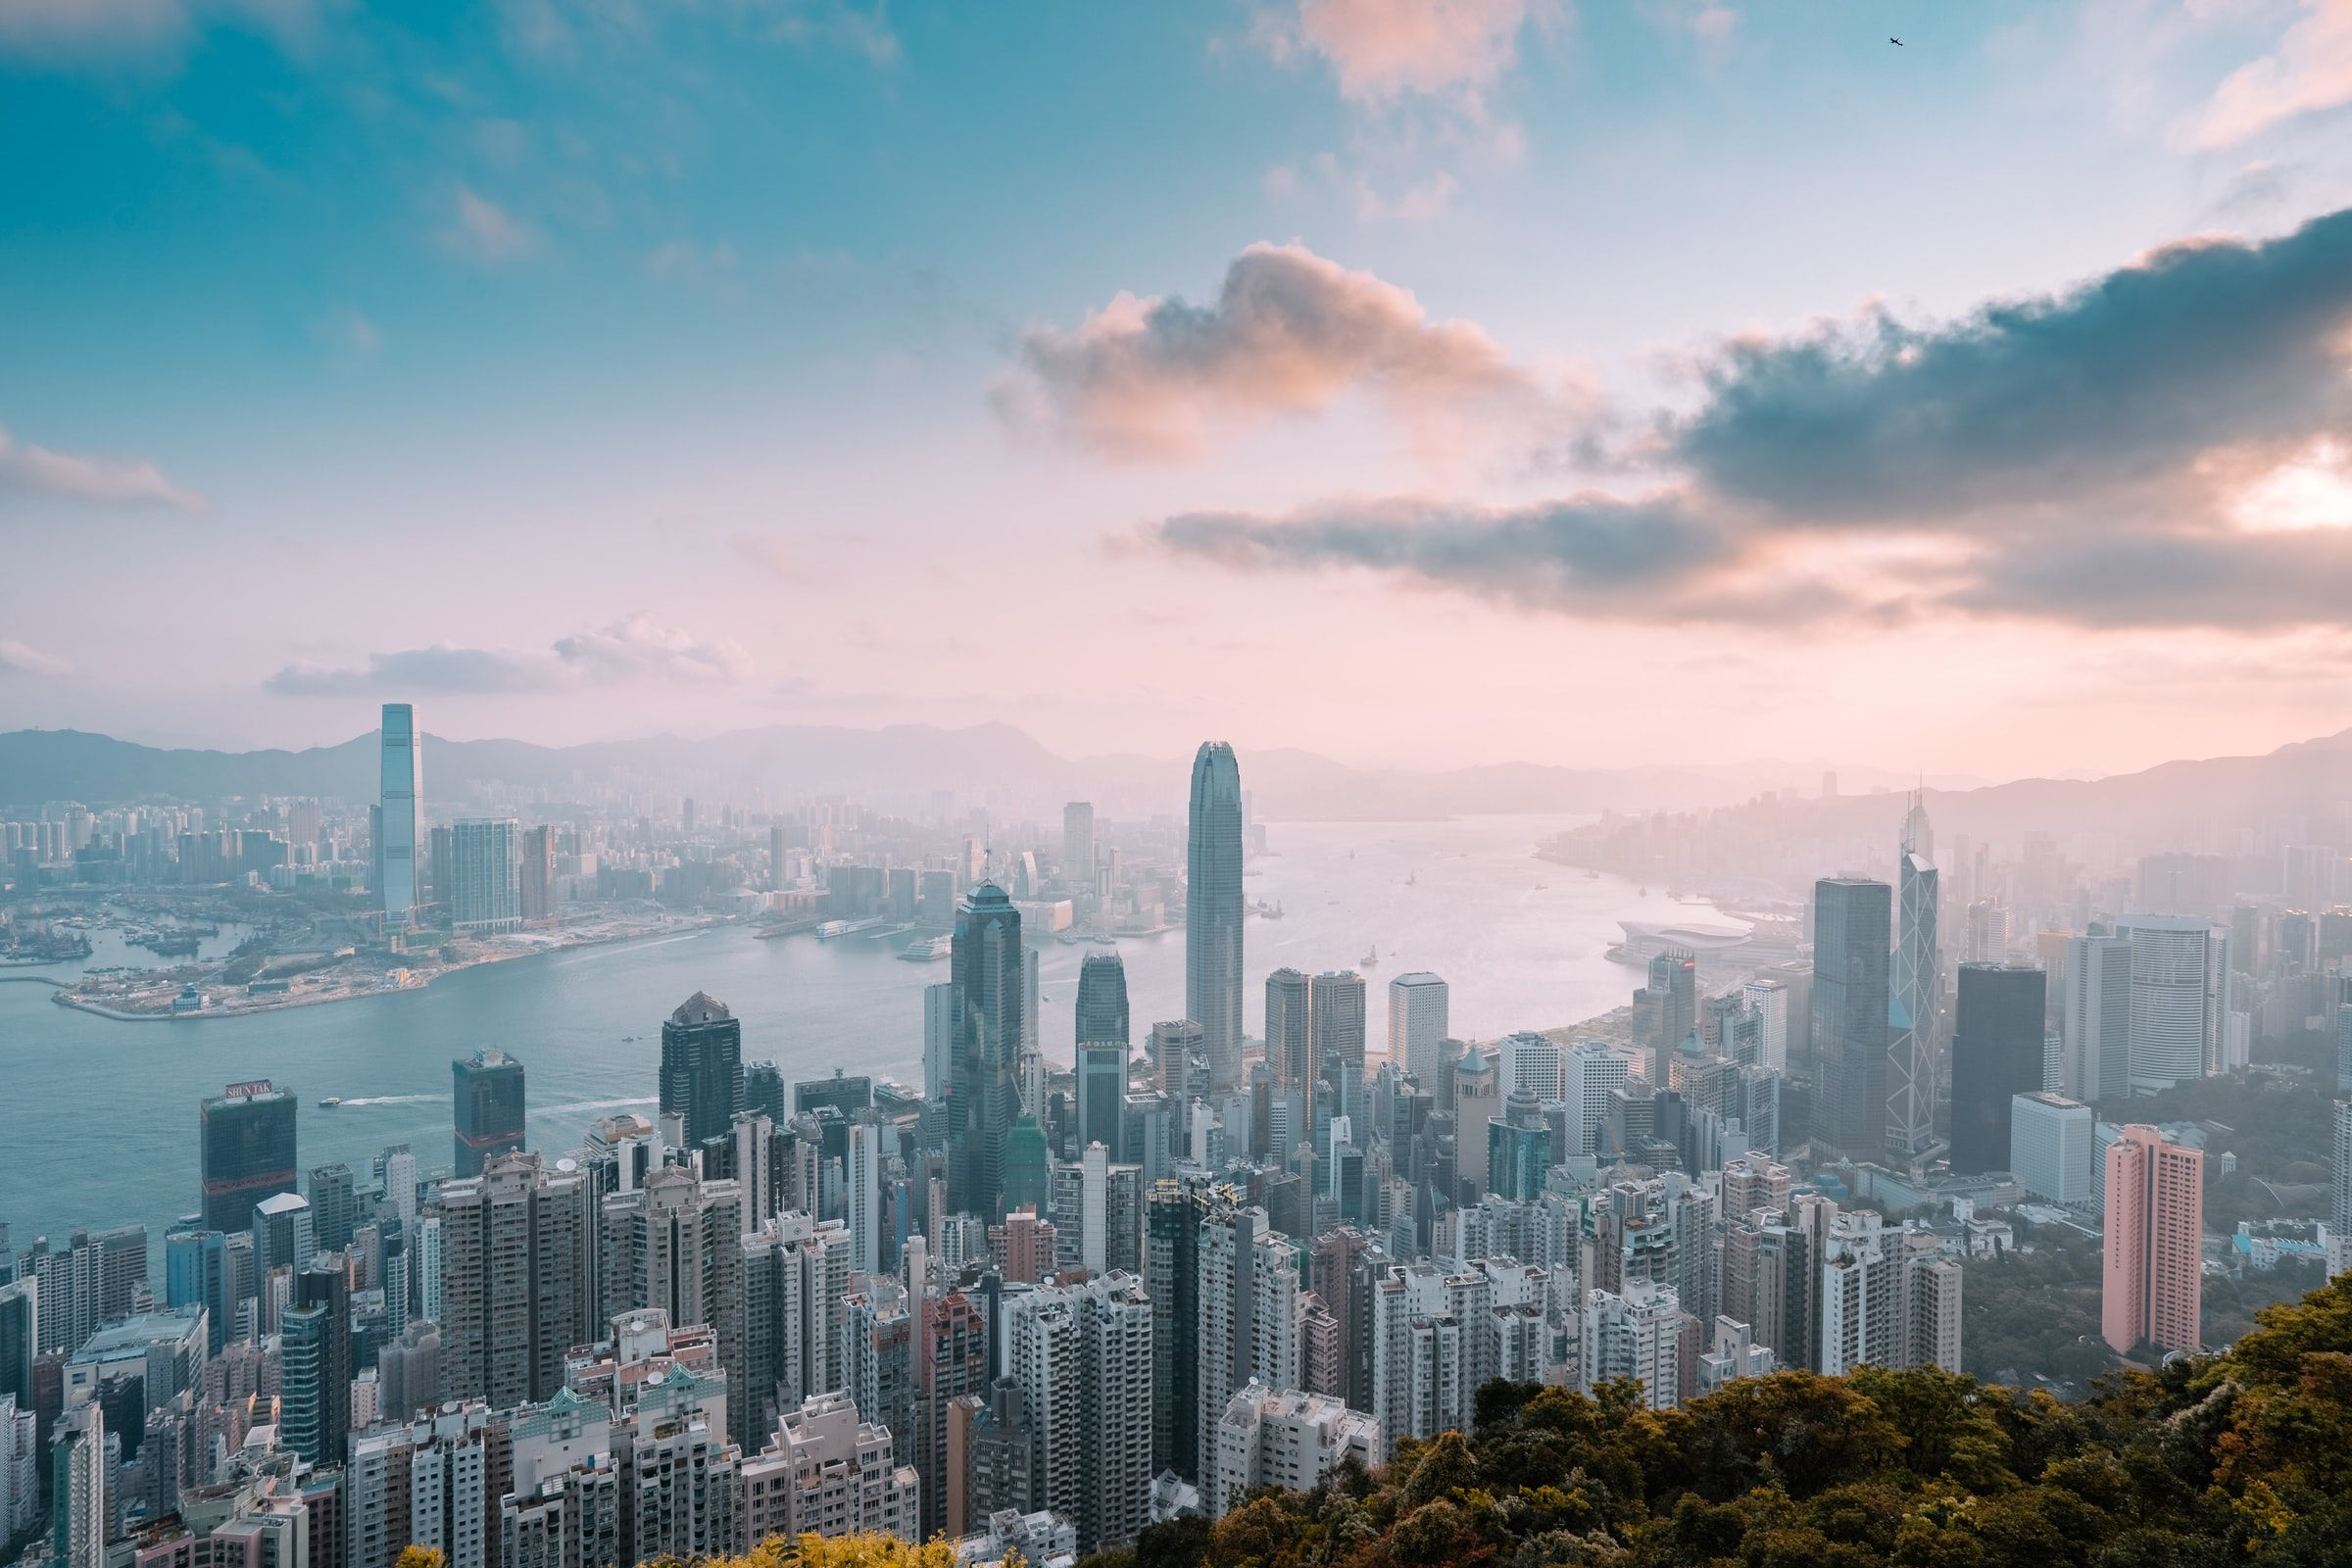 A morning view of hongkong skyline from the peak